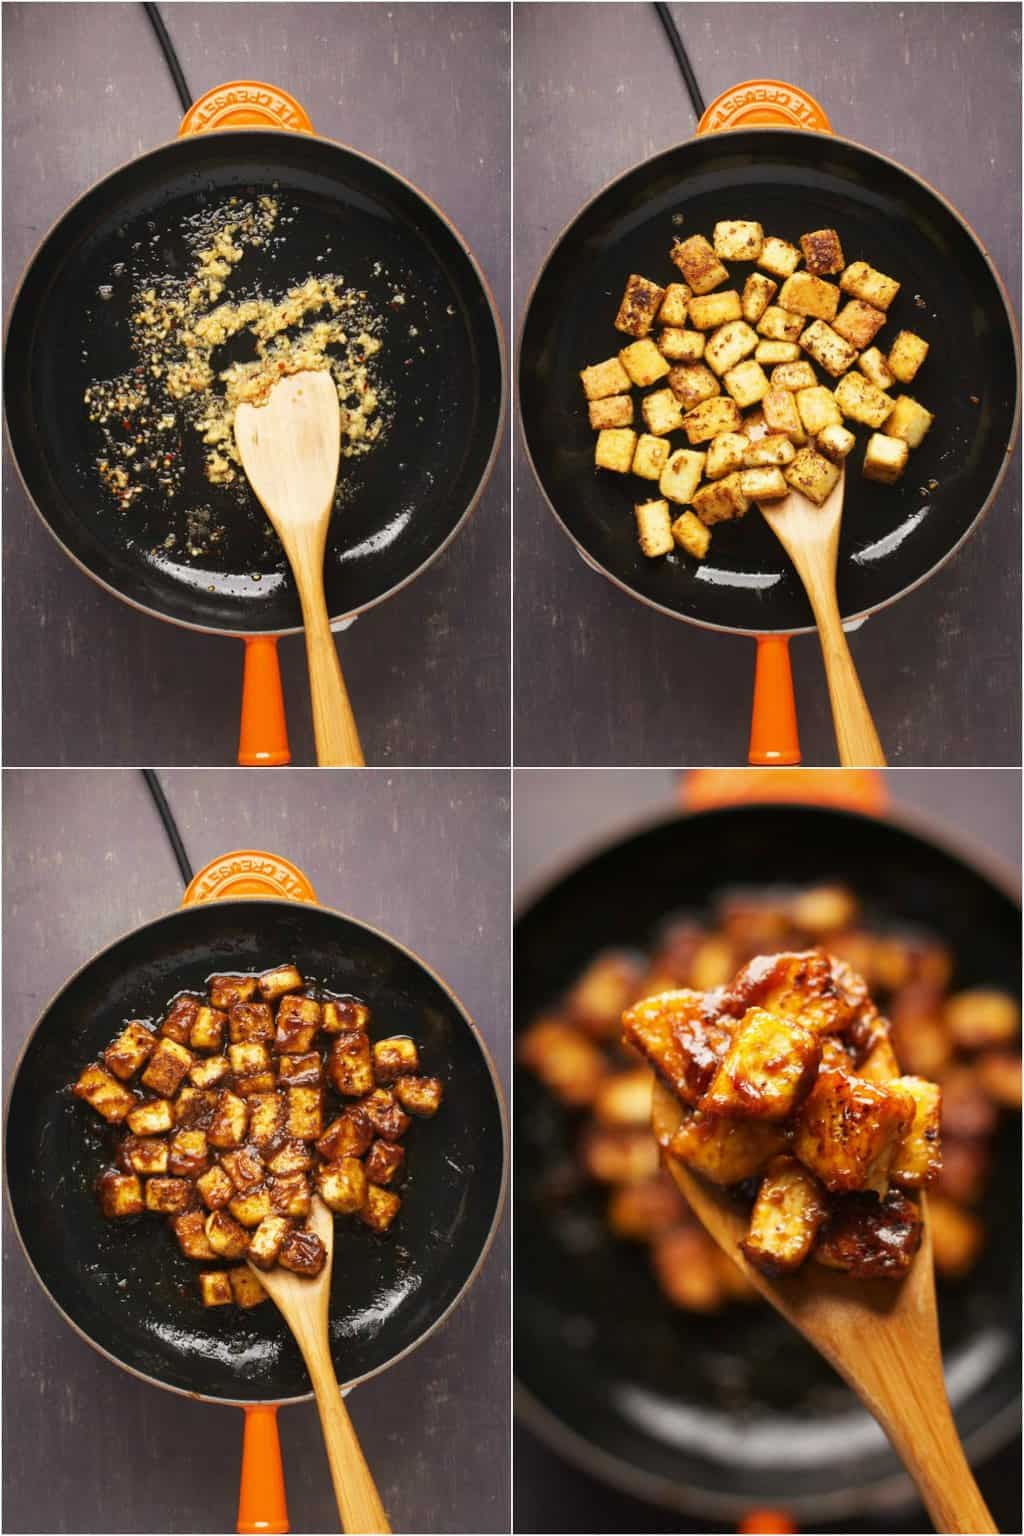 Step by step process photo collage of making General Tso's tofu.